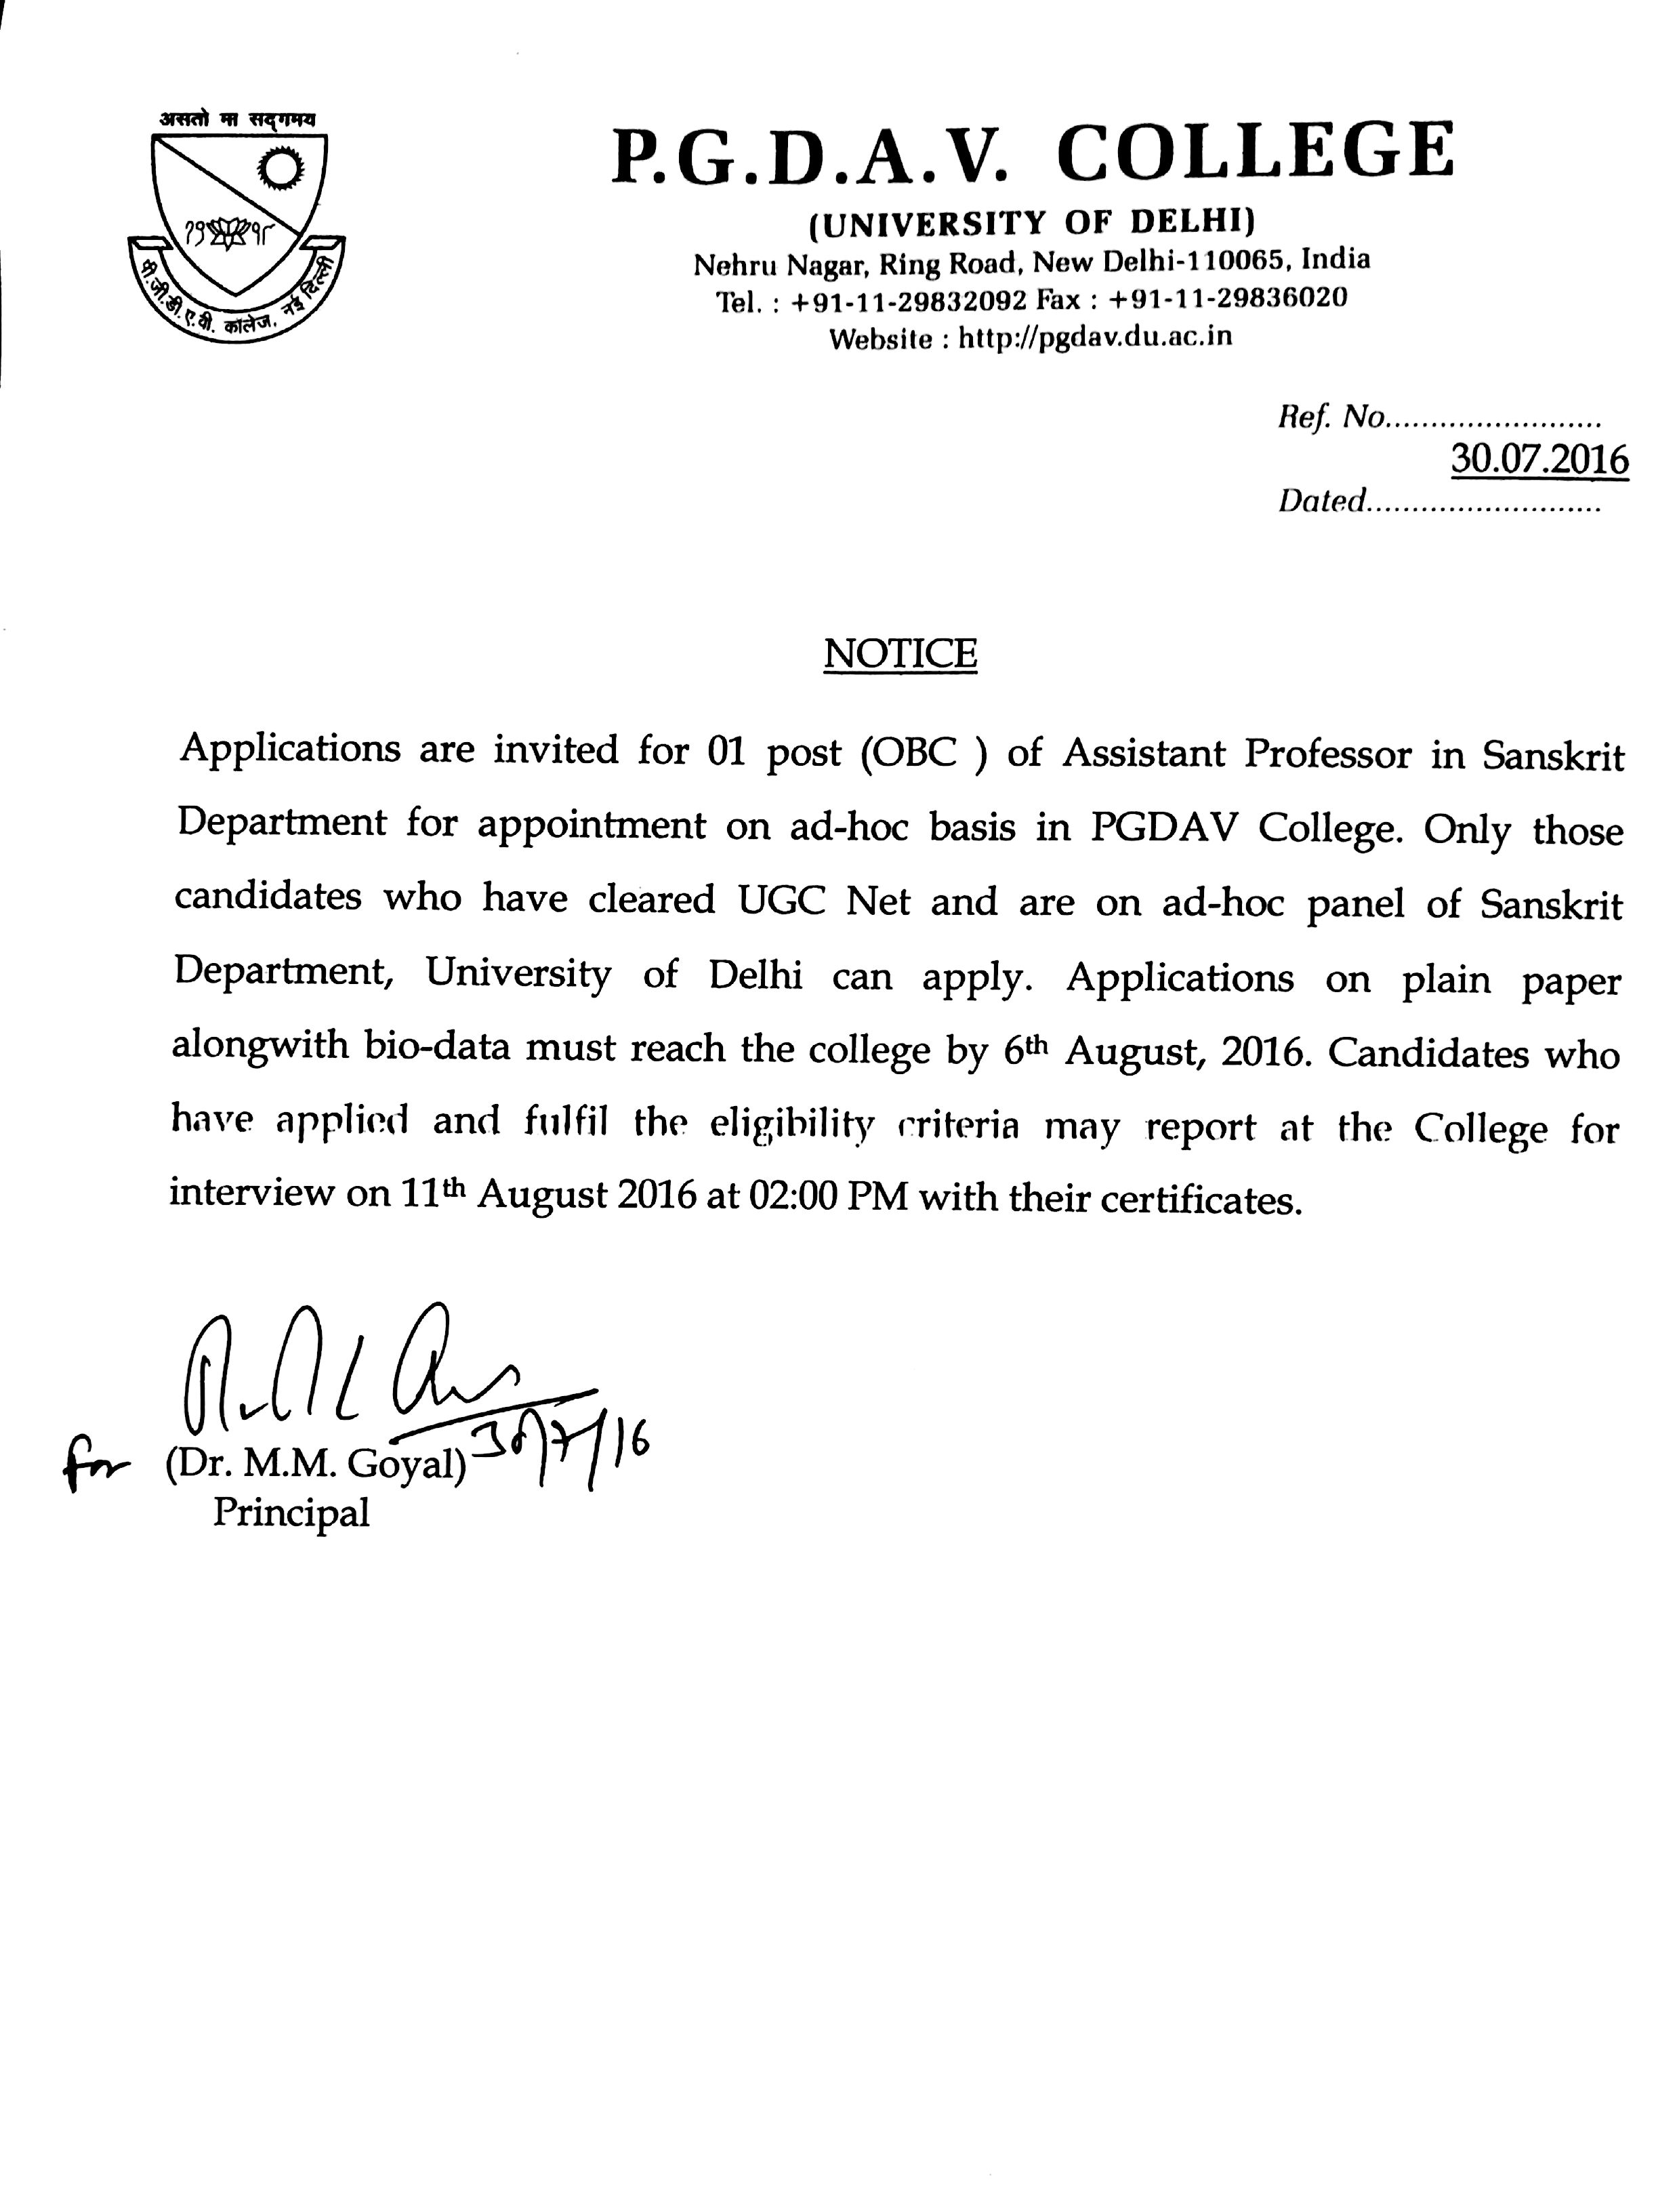 Pgdav college 30 07 2016 applications are invited of assistant professor in the department of sanskrit thecheapjerseys Images